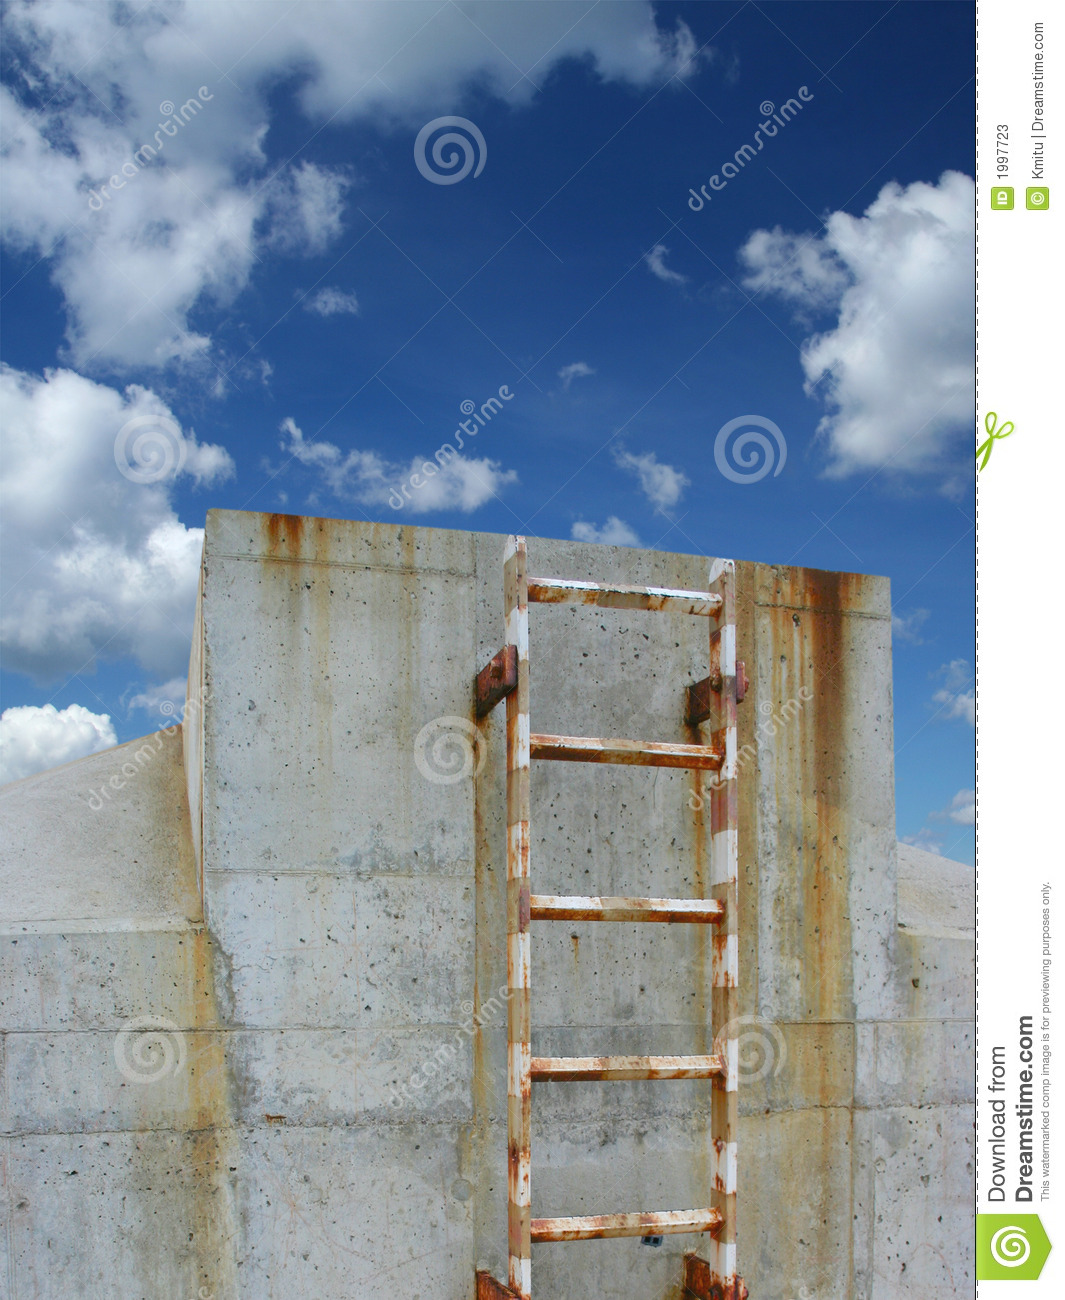 Download Way to the heaven stock image. Image of paradise, ladder - 1997723